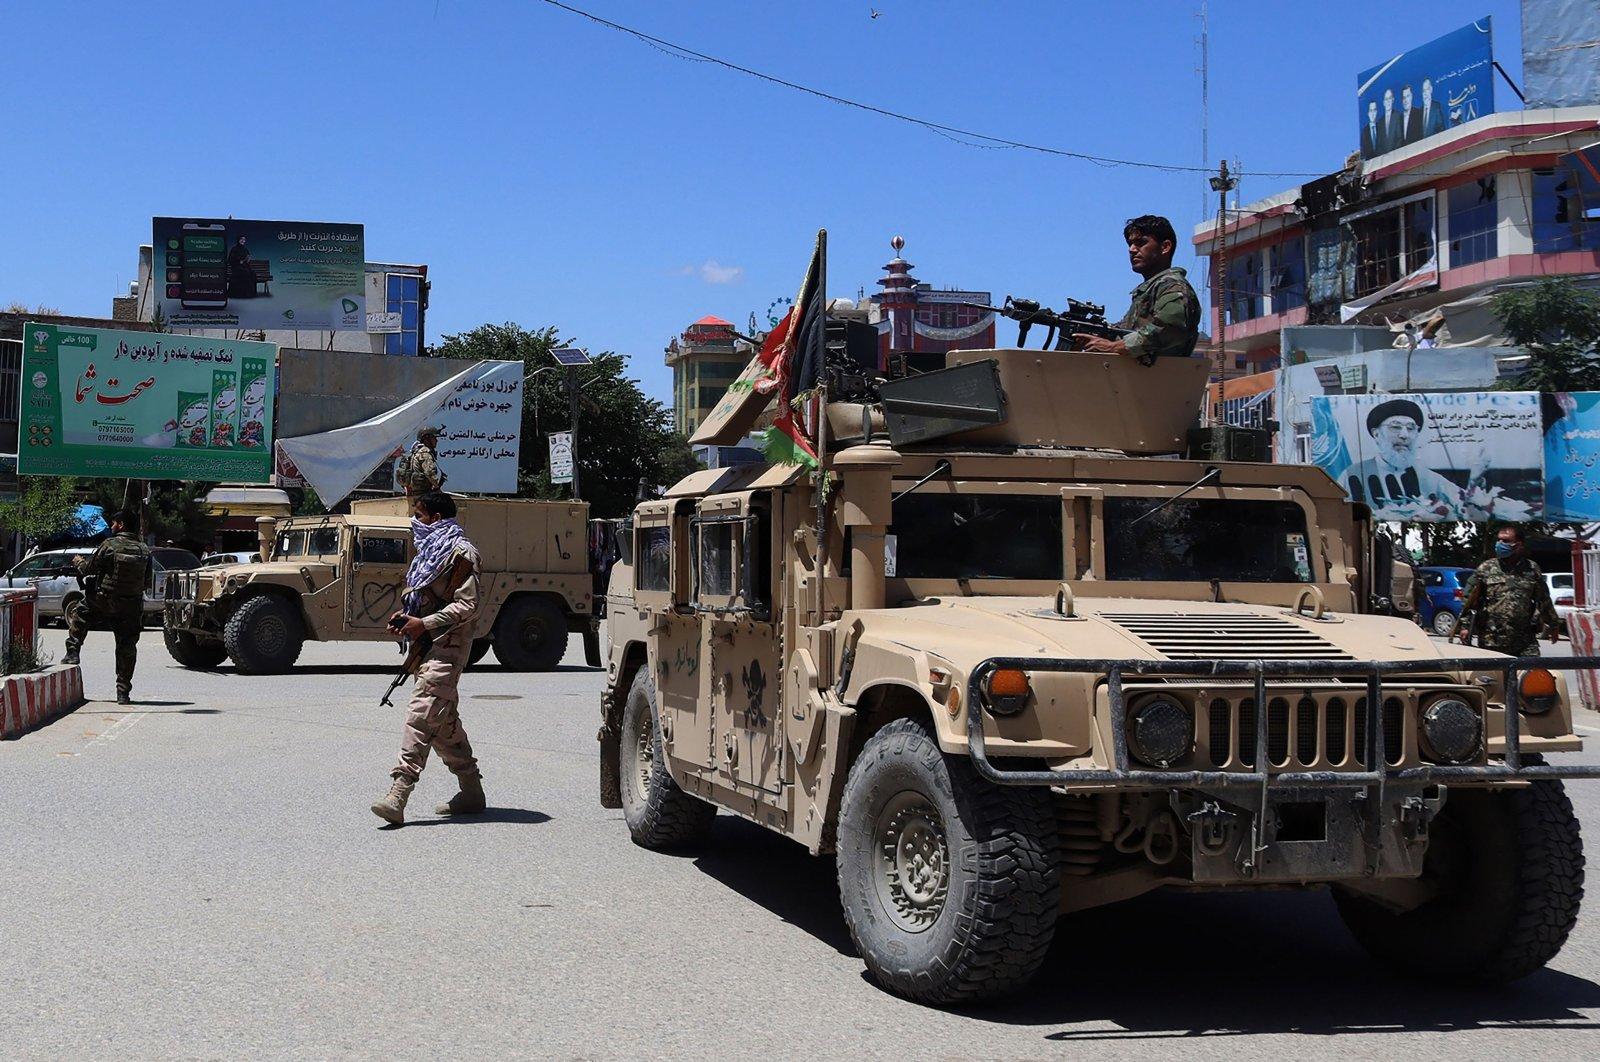 Afghan security forces sit in a Humvee vehicle amid ongoing fighting between Taliban militants and Afghan security forces in Kunduz, Afghanistan, on May 19, 2020. (AFP Photo)